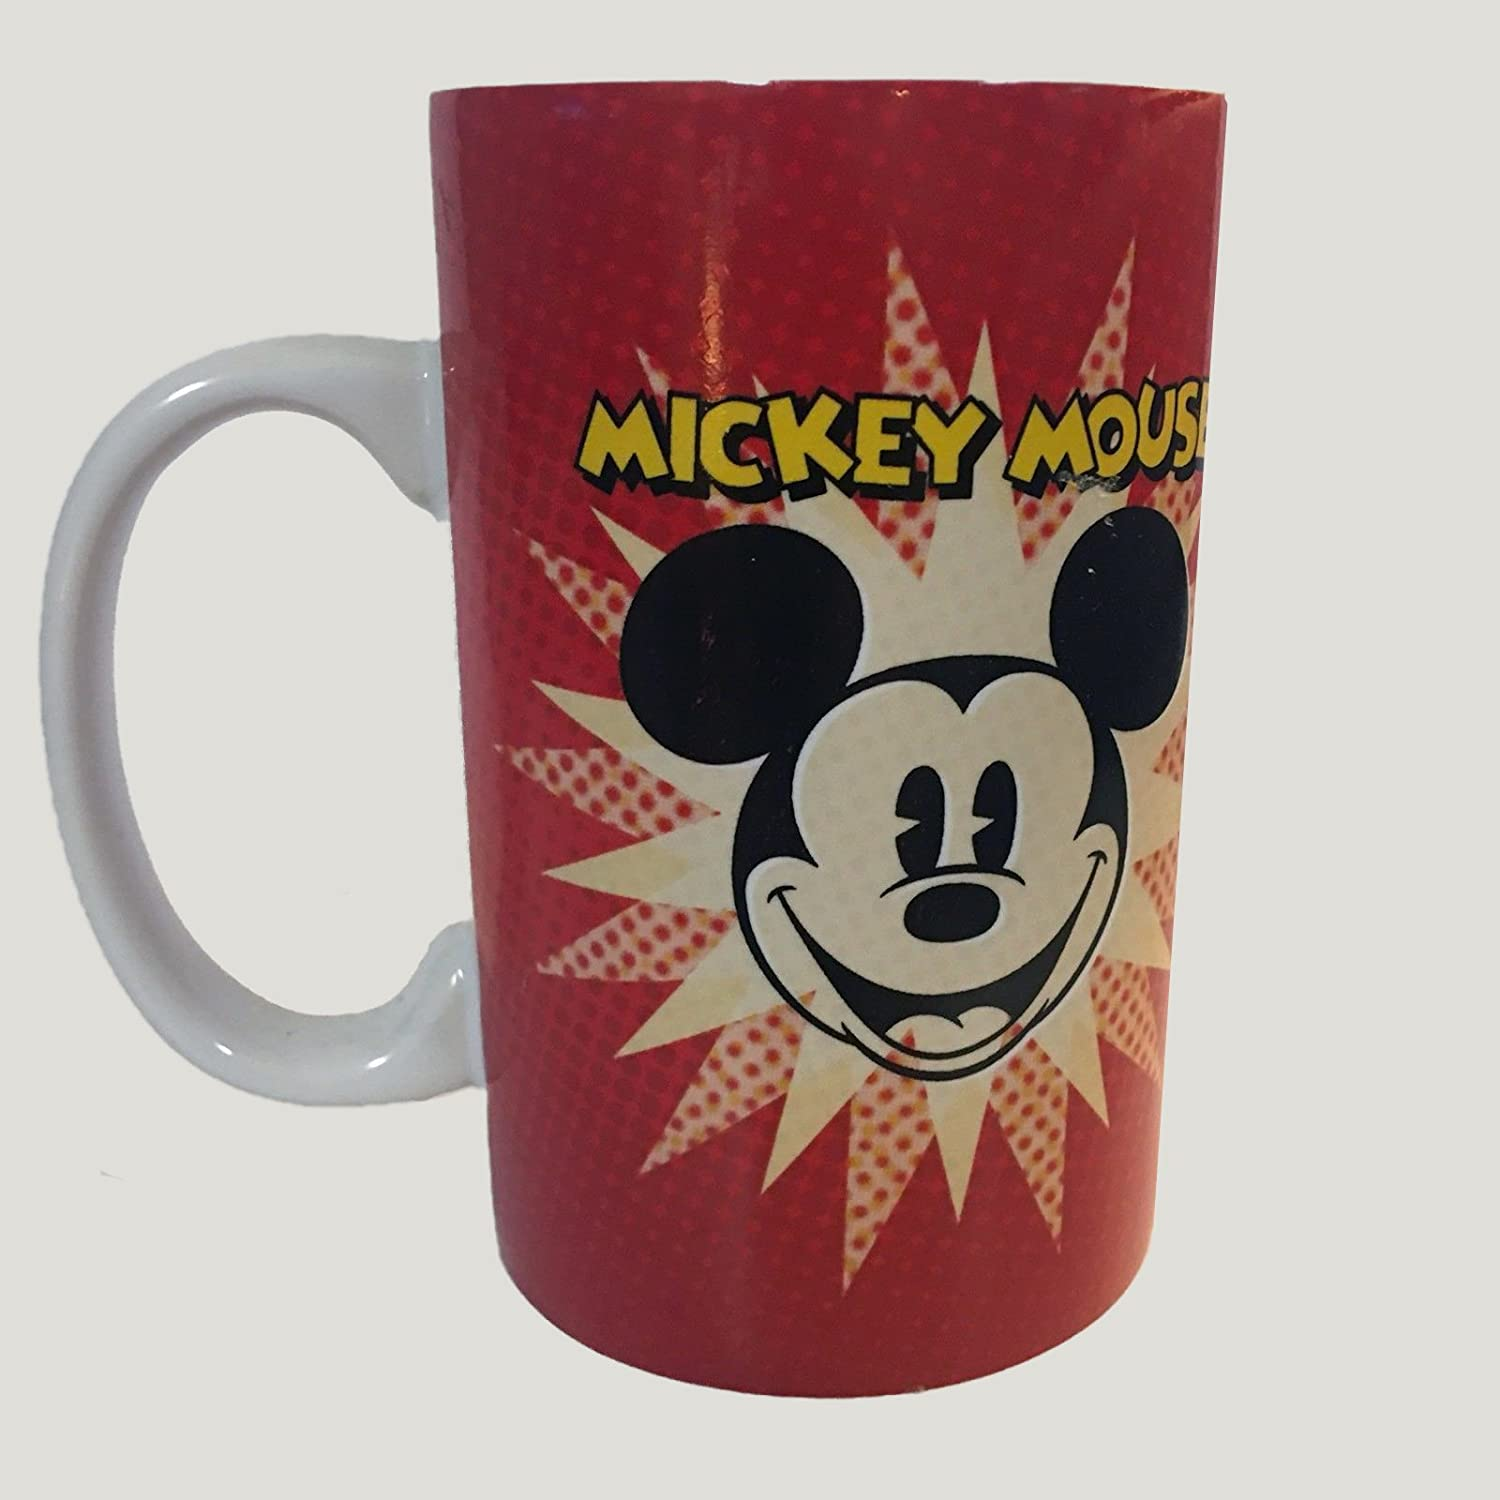 Mickey Mouse Coffee Mug Nice is not the same as wimpy.